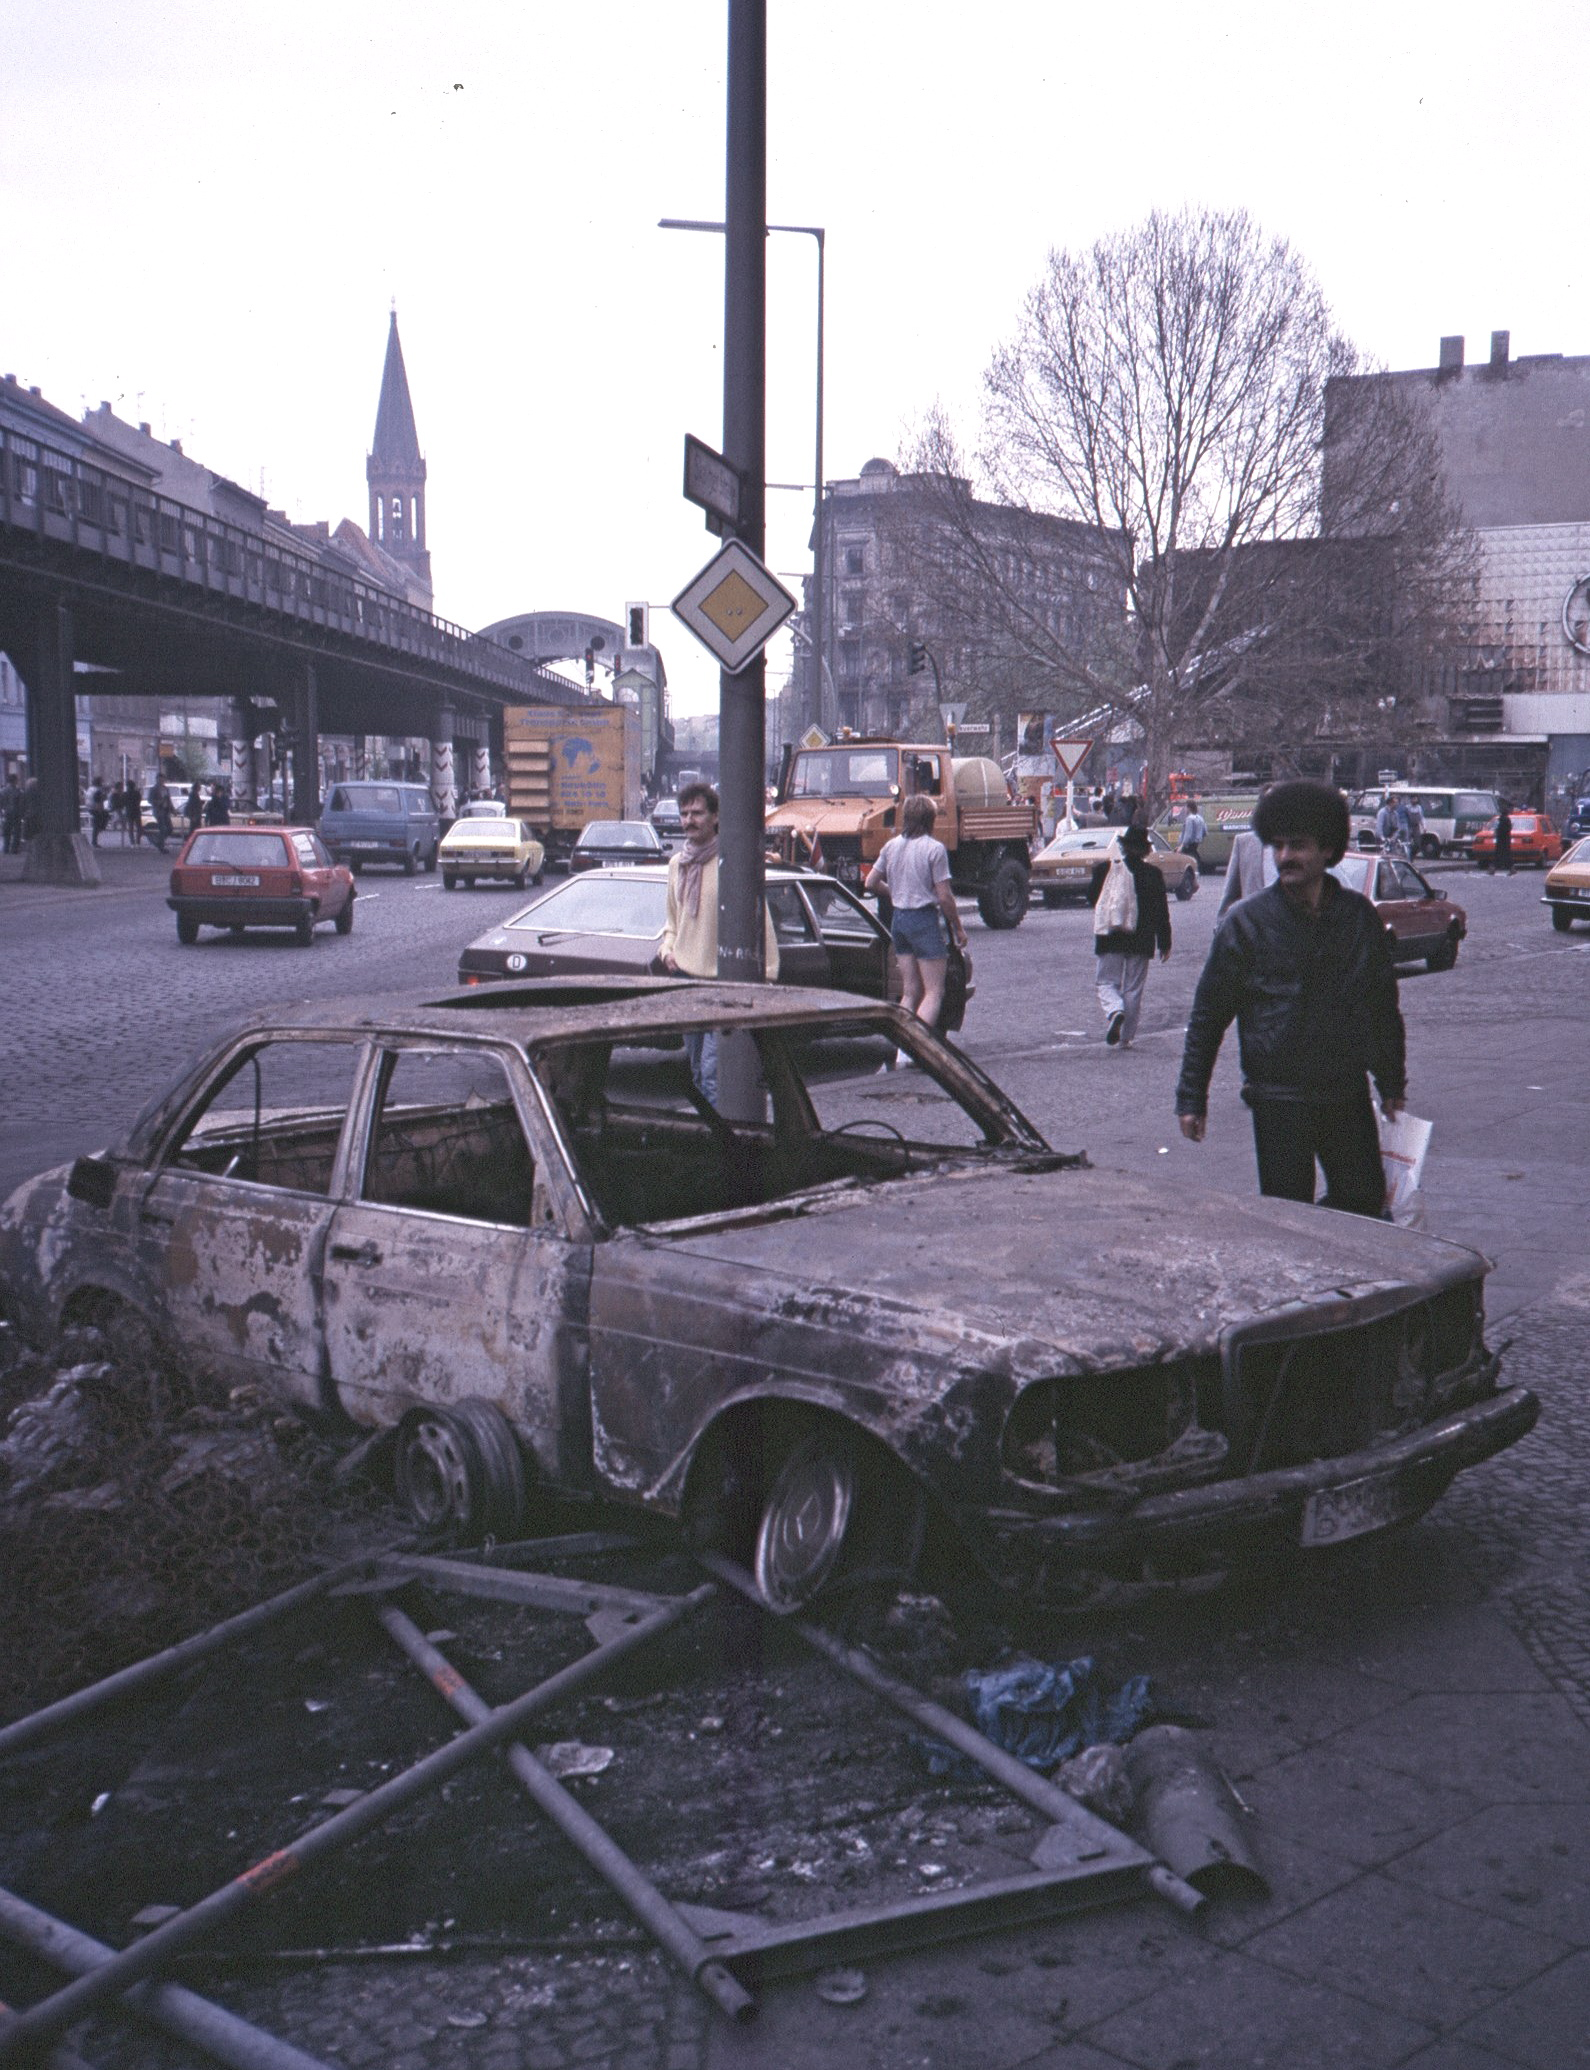 A burned-out car on the streets of Berlin on the morning of May 2, 1987. The photo was taken in the Kreuzberg district at the intersection of Skalitzerstraße and Mariannenstraße. The train station in the background is Görlitzer bahnhof, today a stop on the U-1 line. Photo credit:  creative commons.